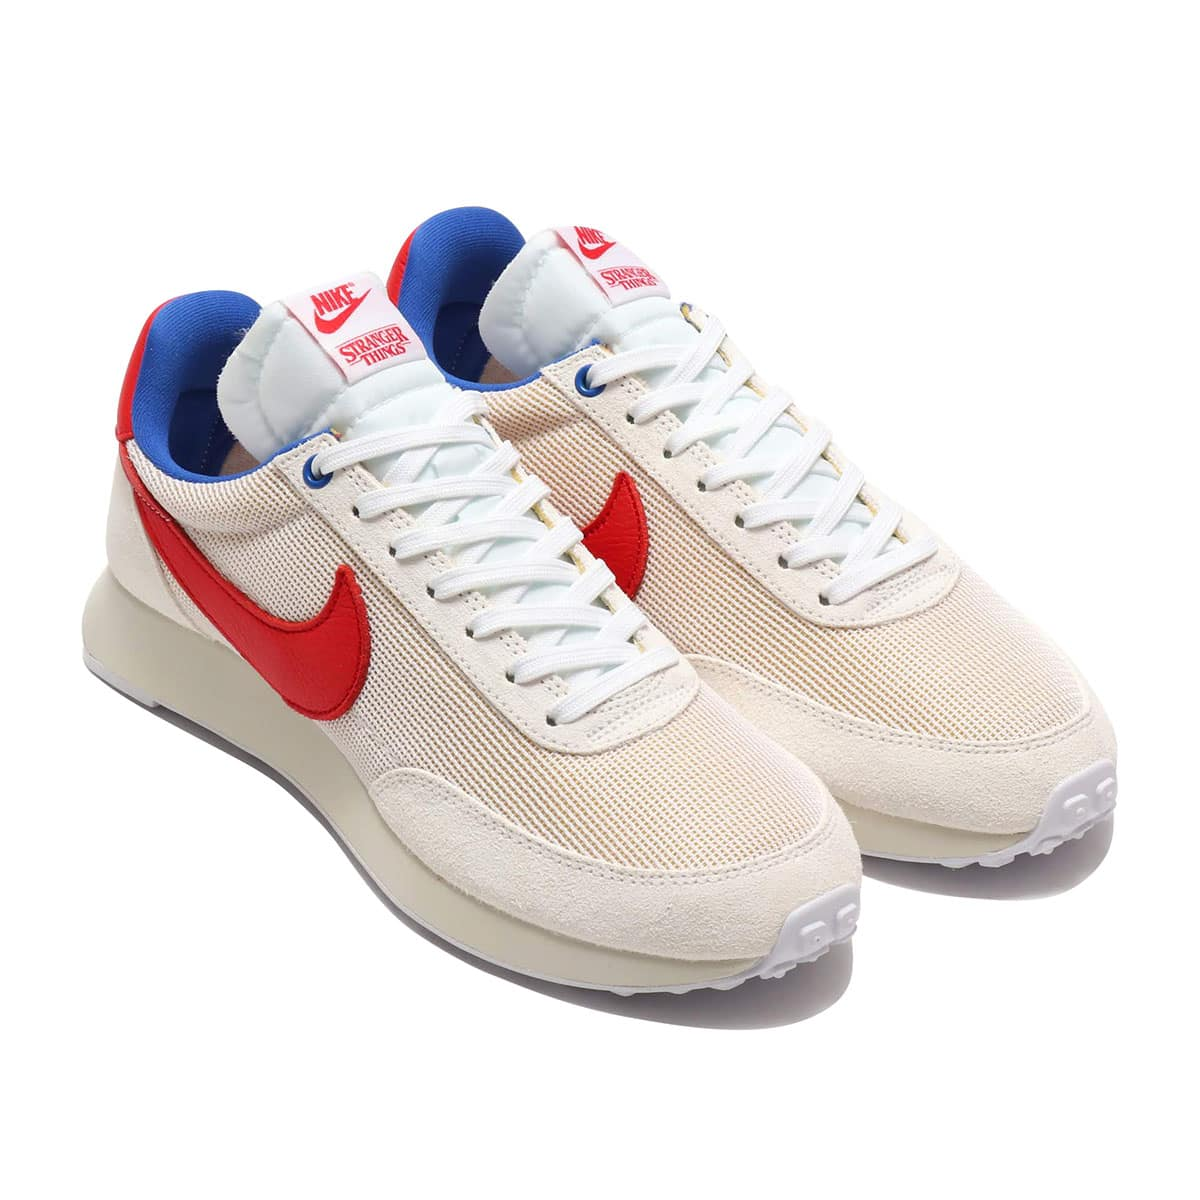 NIKE AIR TAILWIND QS ST WHITE/UNIVERSITY RED-GAME ROYAL-SAIL 19FA-S_photo_large